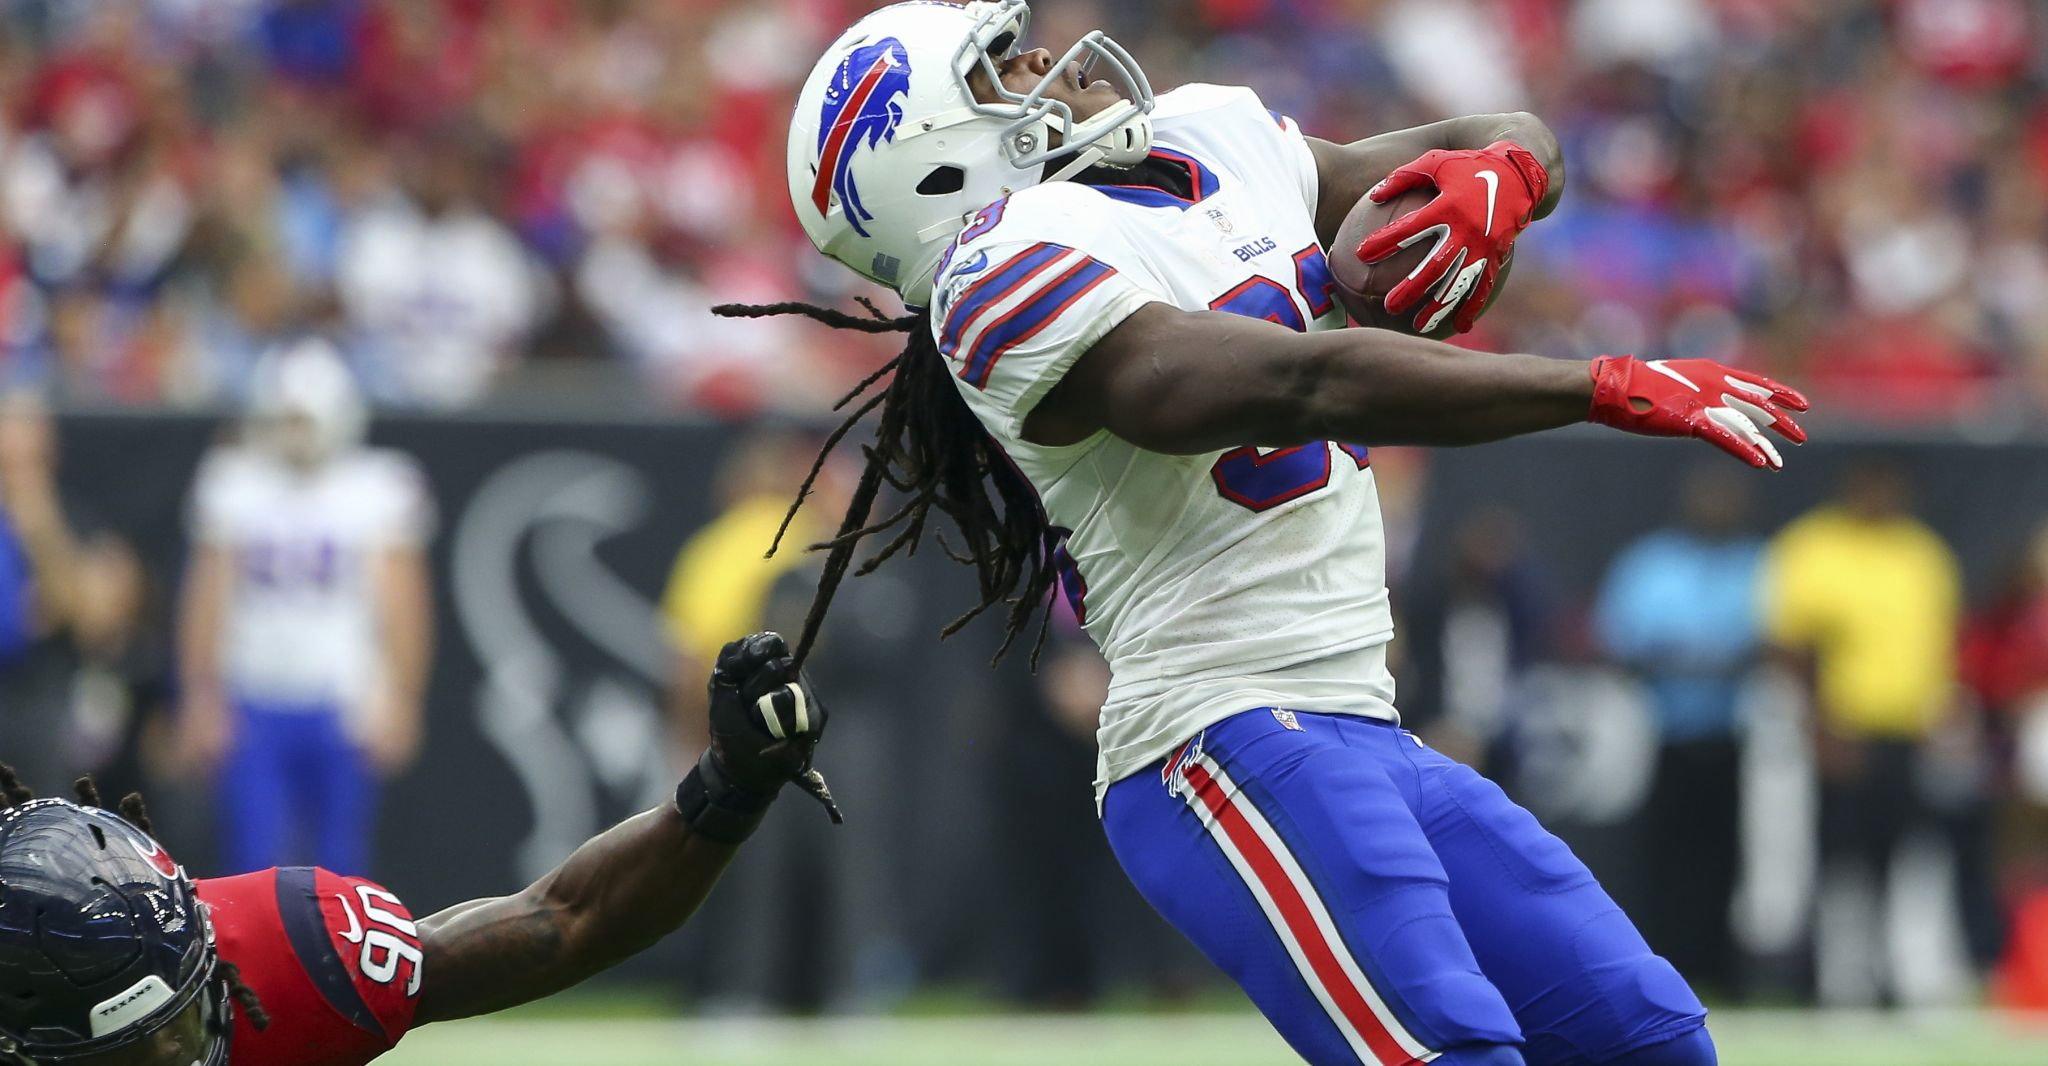 Texans' Jadeveon Clowney tackles Chris Ivory by his hair, later ...